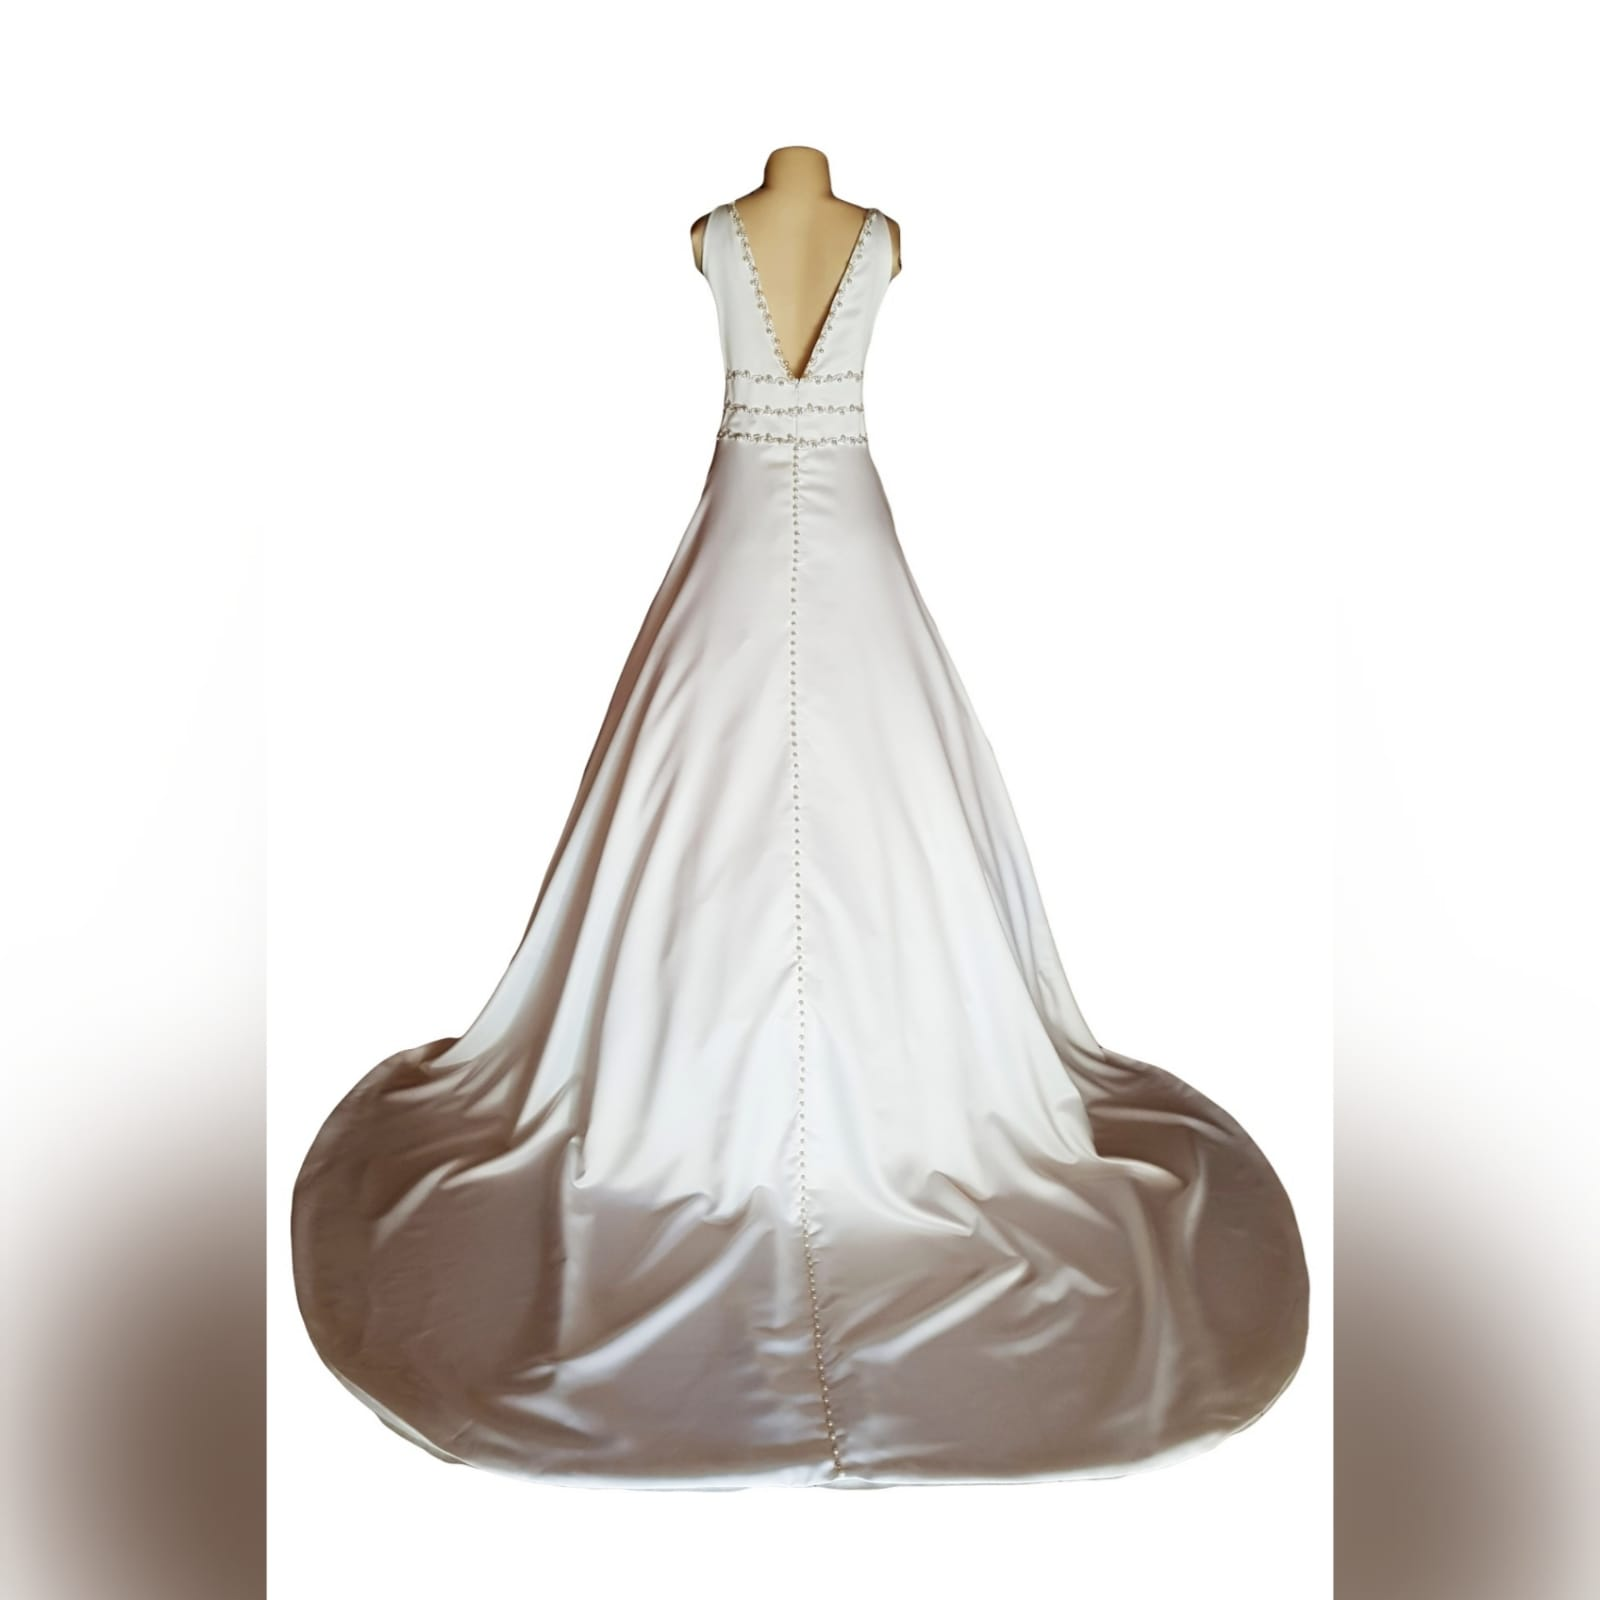 A line brides dress in a pearl satin fabric 17 this elegant wedding dress was designed and made for a wedding in brazilan a-line brides dress in a pearl satin fabric, with an illusion deep neckline and v open back. Detailed with diamante, pearls and buttons. A wide train that hooks up. And a brazilian traditional embroidered inside hem with the bridesmaid's names.